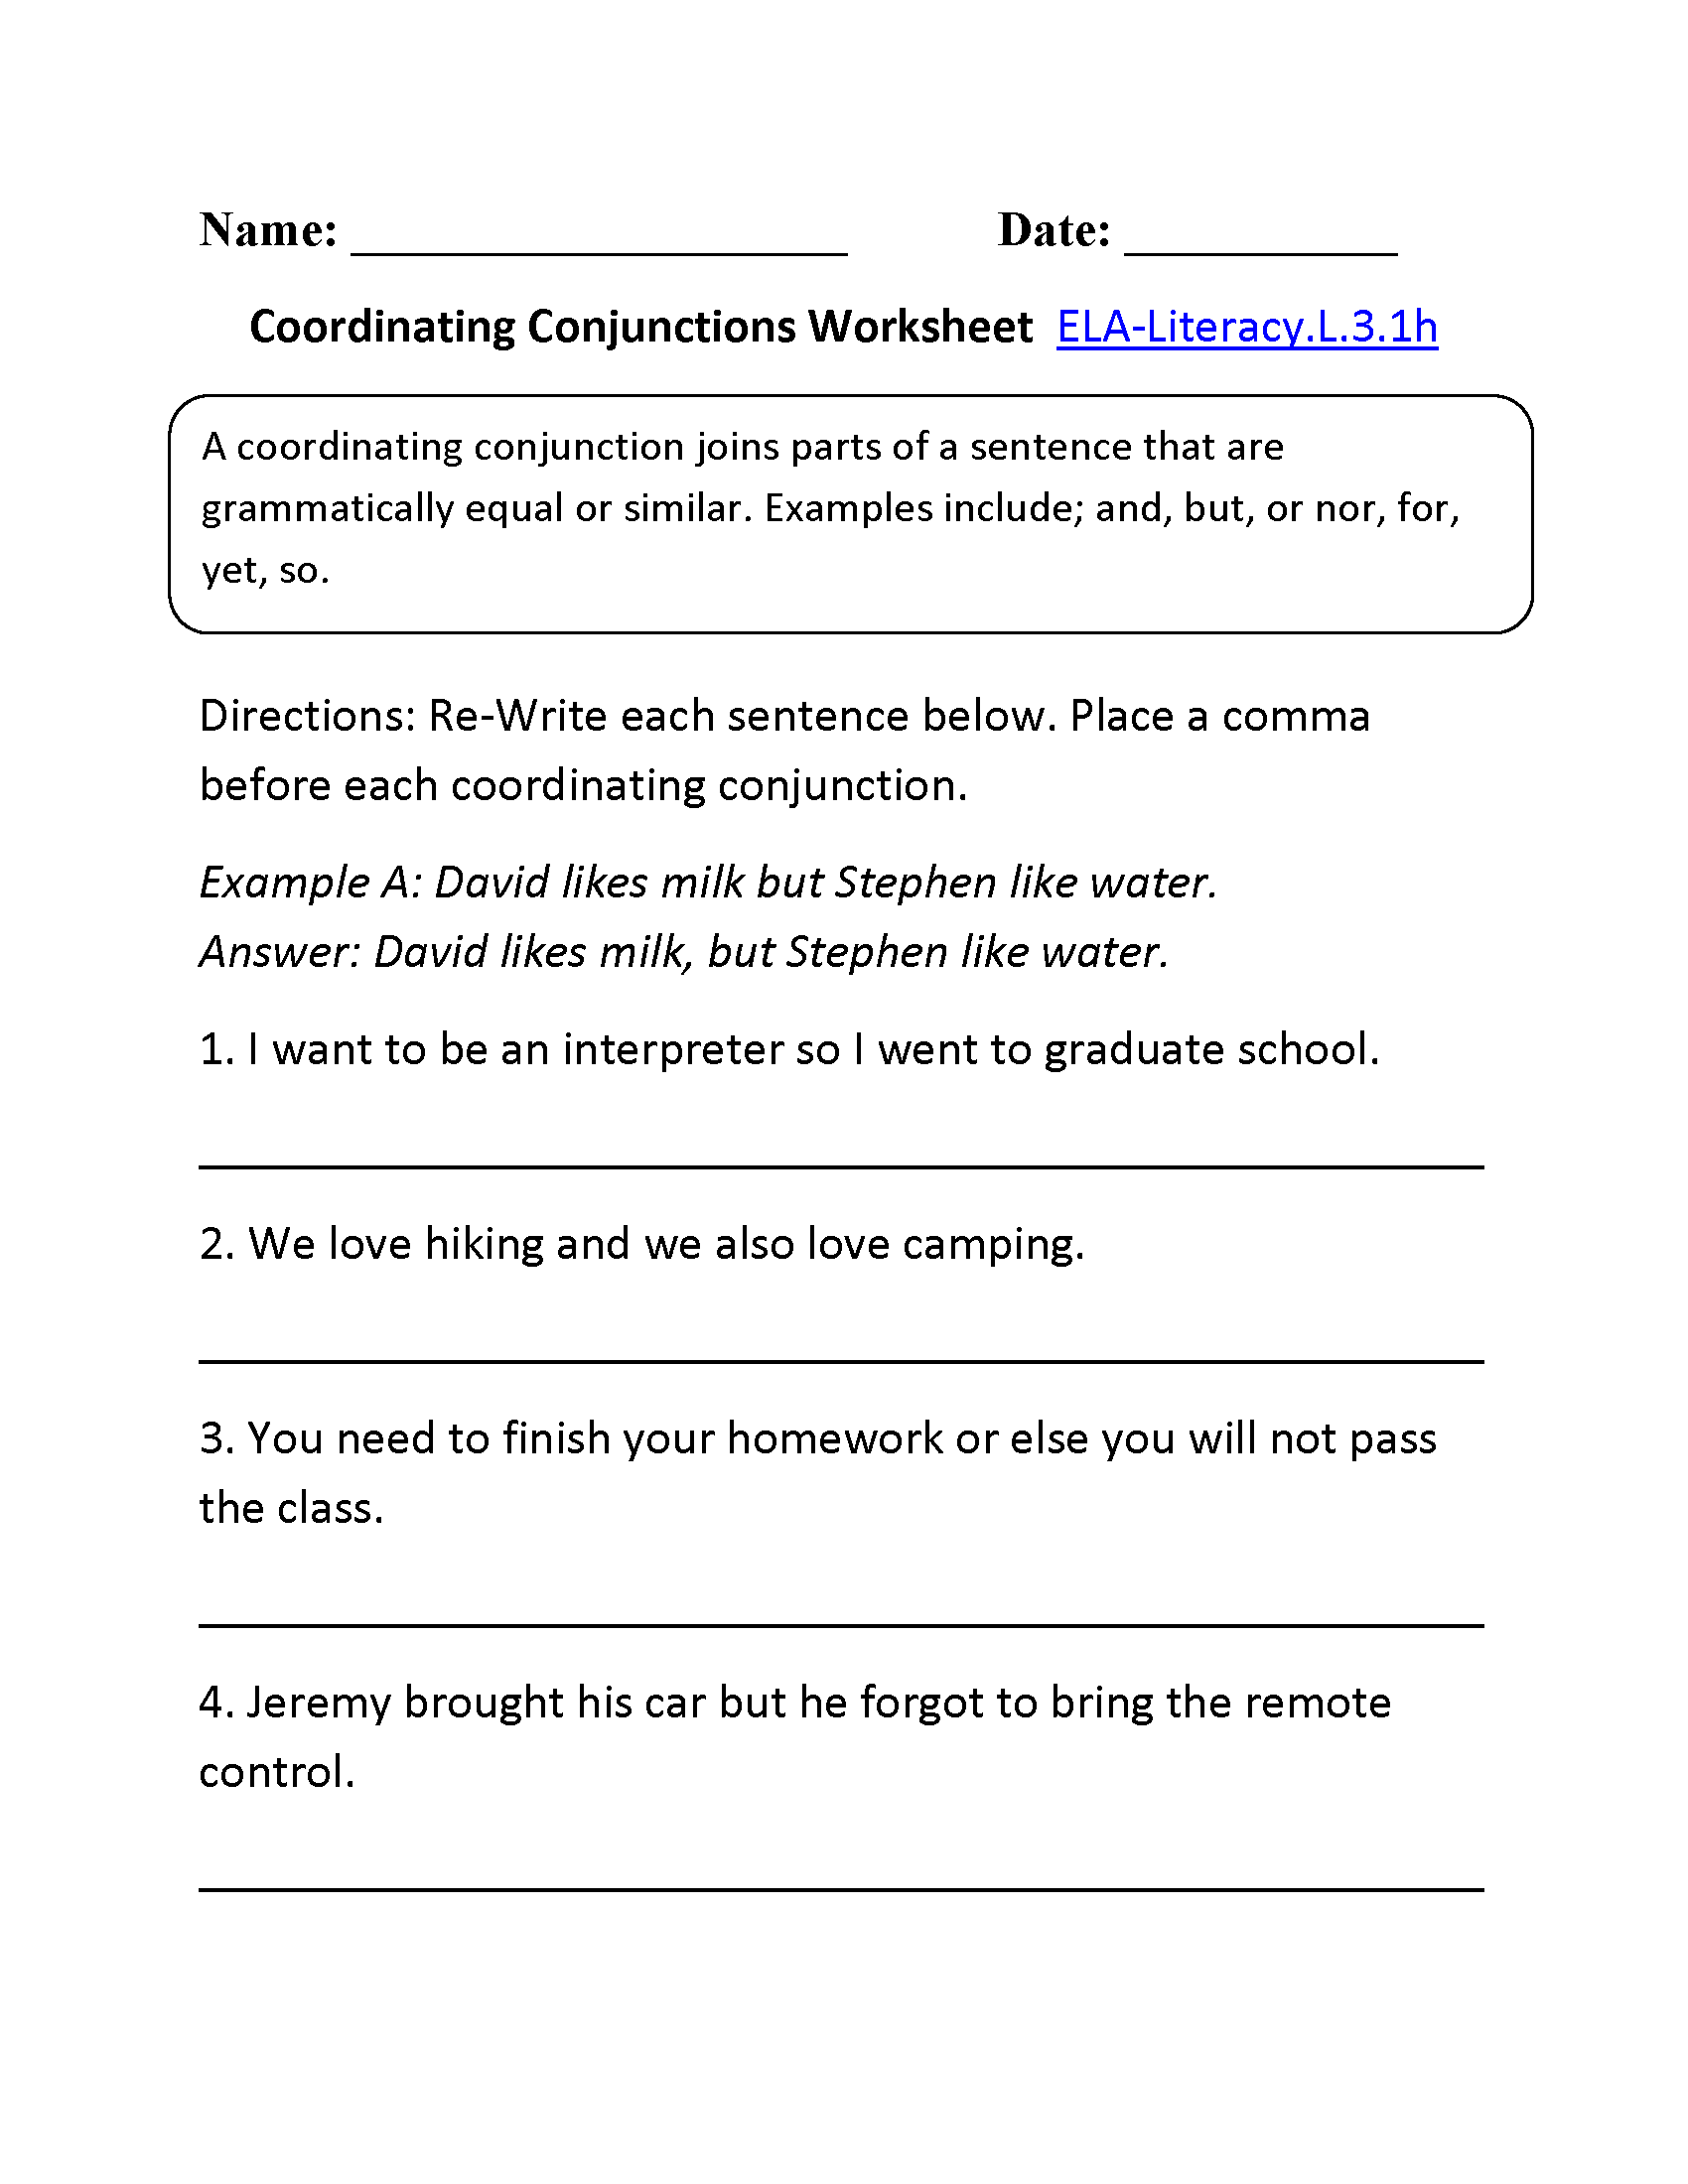 Coordinating Conjunctions Worksheet 1 L 3 1